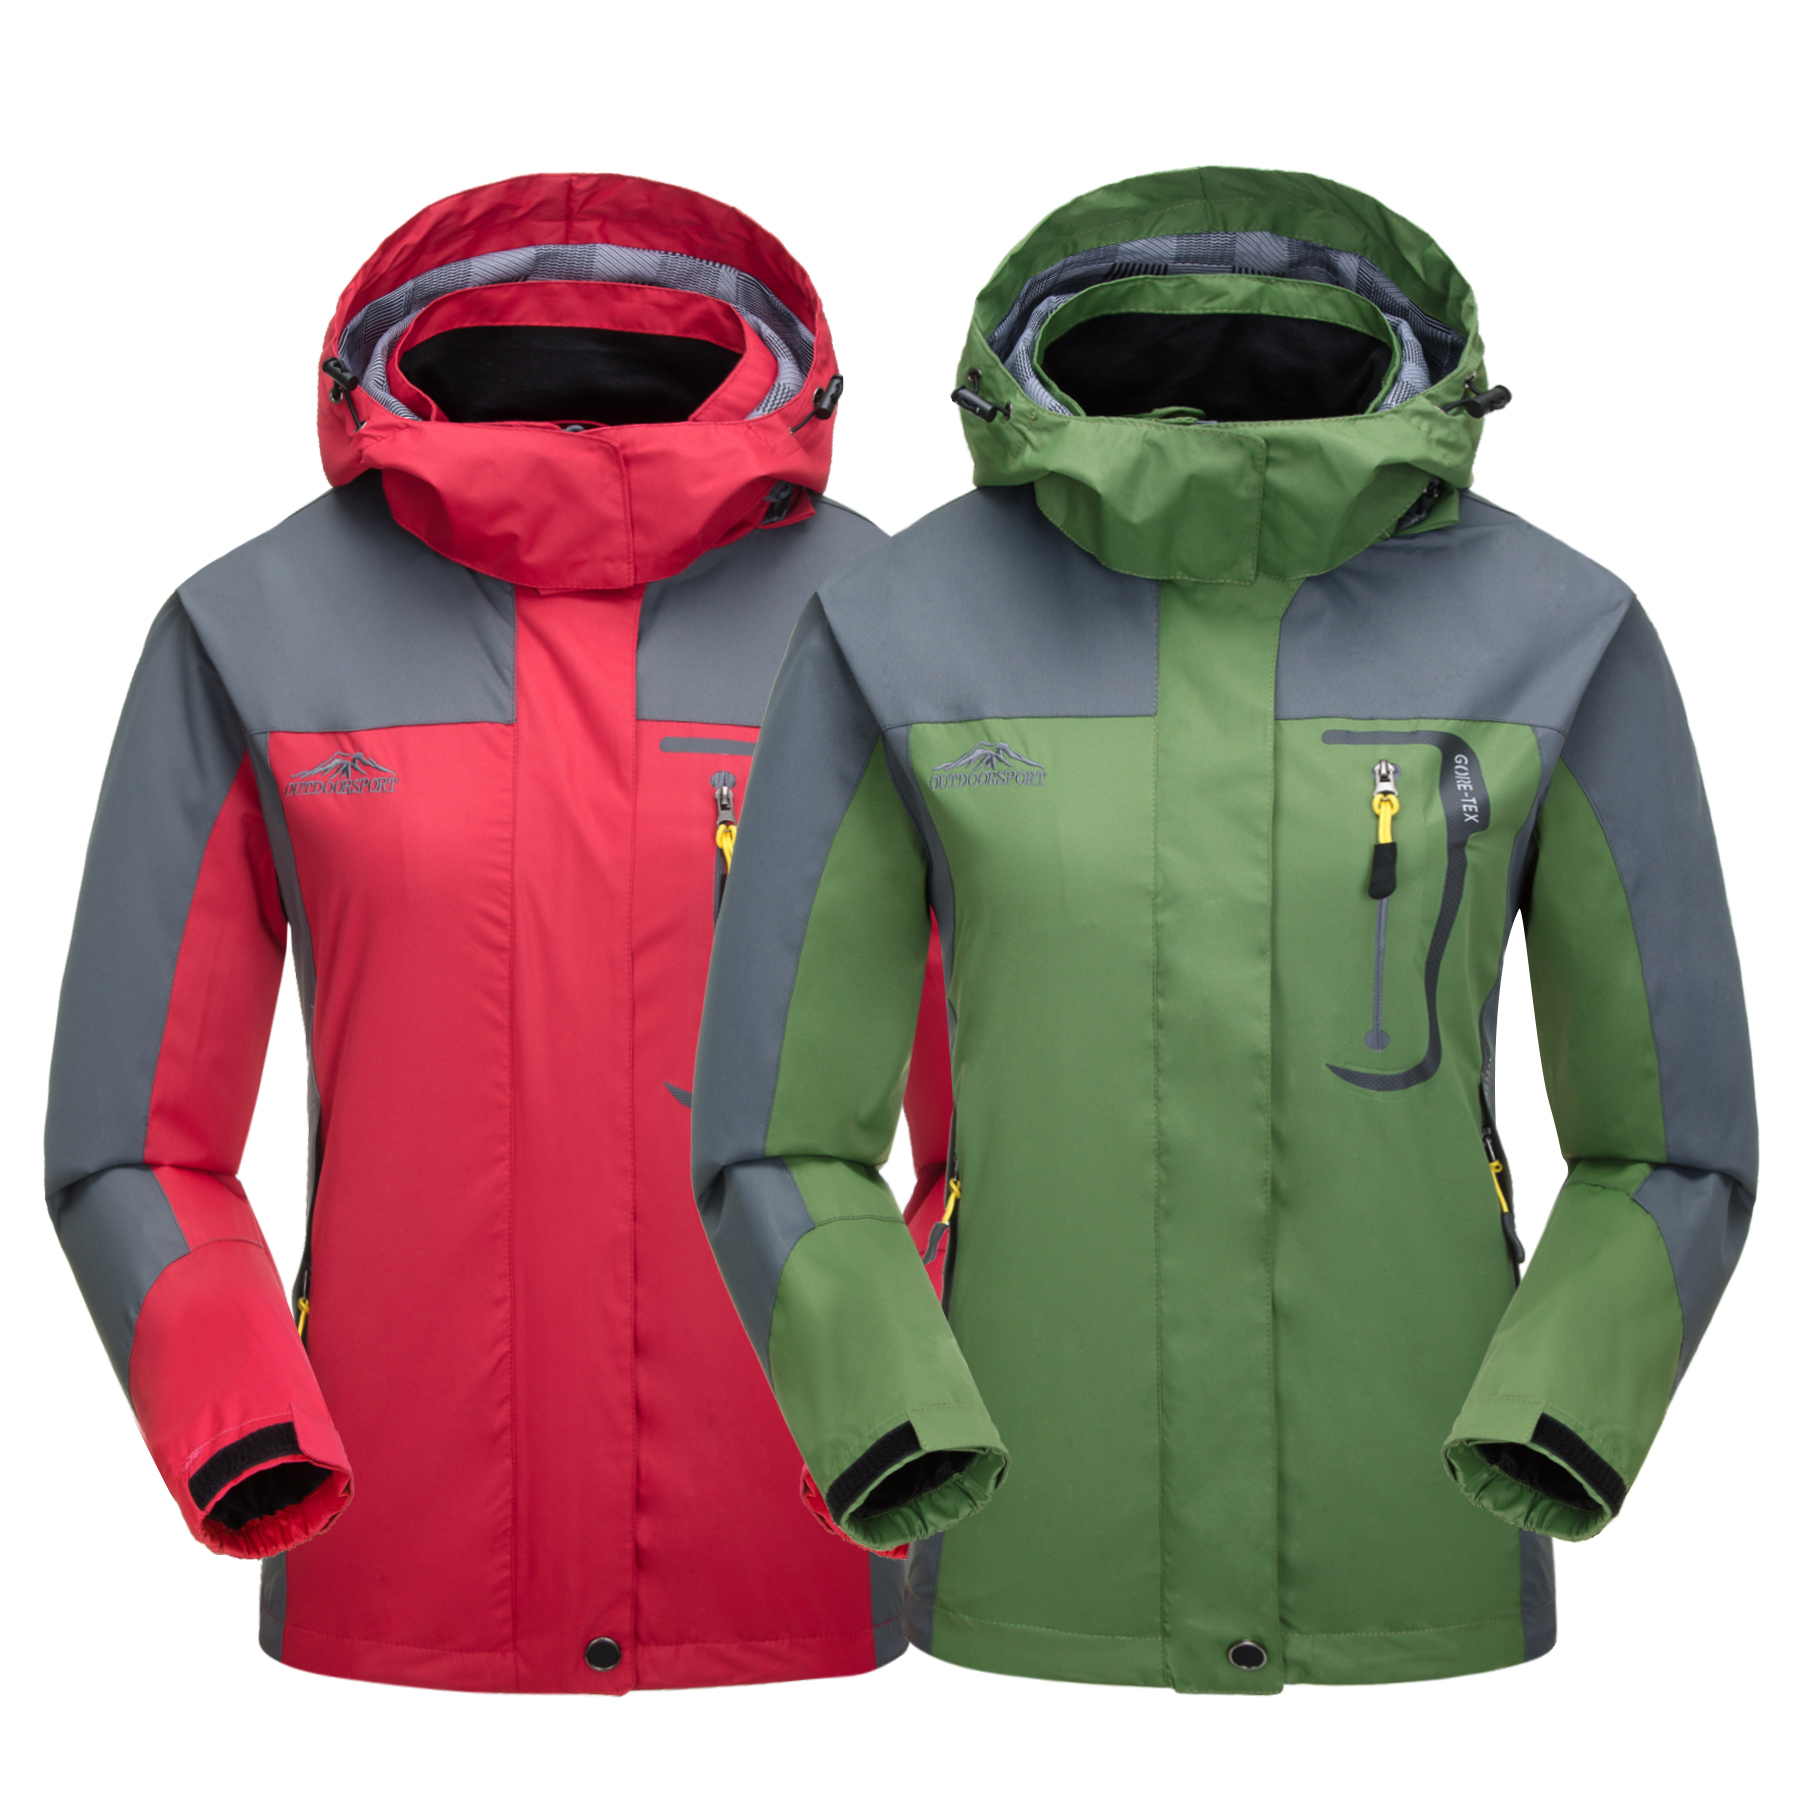 NEW Women Outdoor Camping Hiking Climbing Jacket Coat Top Outwear Windbreaker Sports Apparel Tracksuit Sweater Athletic Blazers womens linen casual blazers elegant autumn office business outwear jacket top blazer half sleeve single button slim wear to work